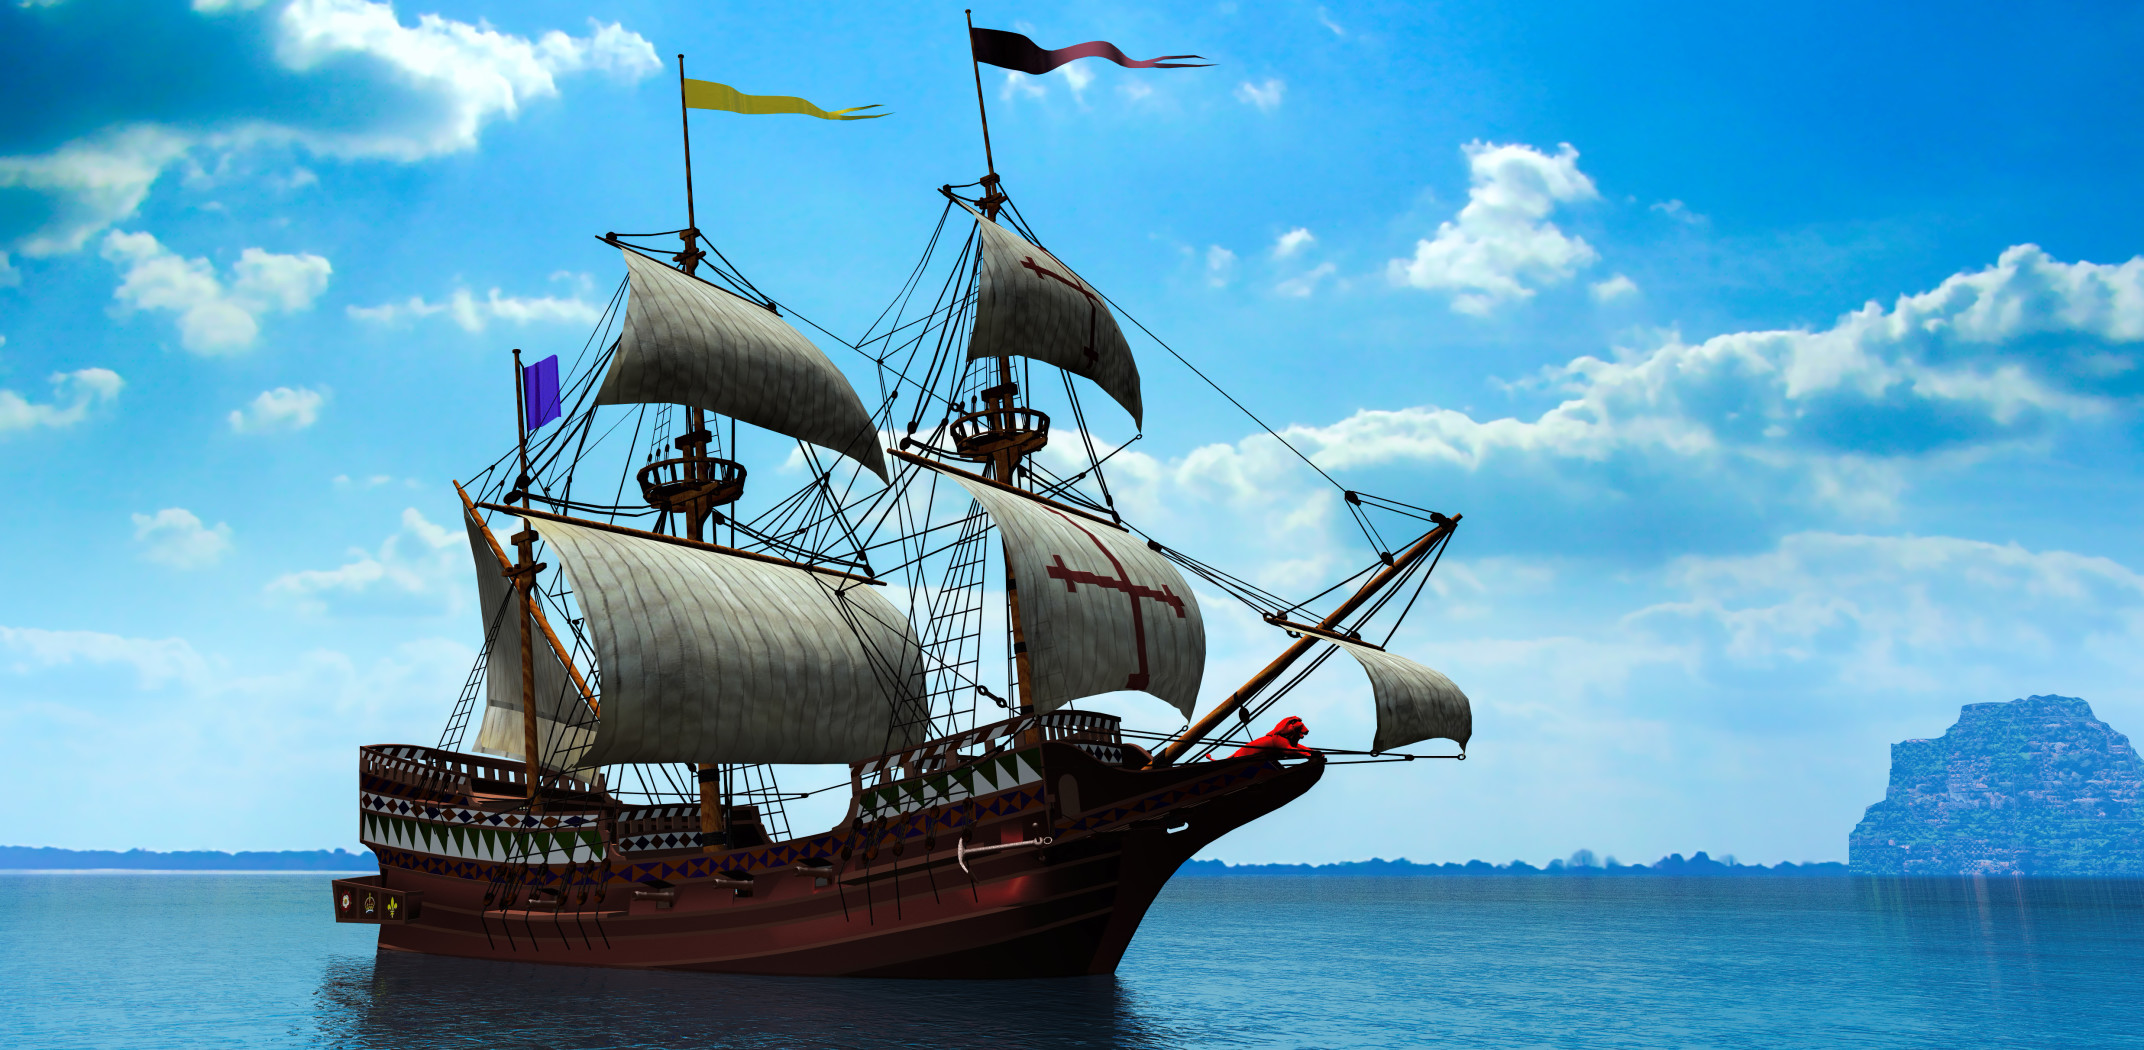 Spanish galleon on calm and blue sea